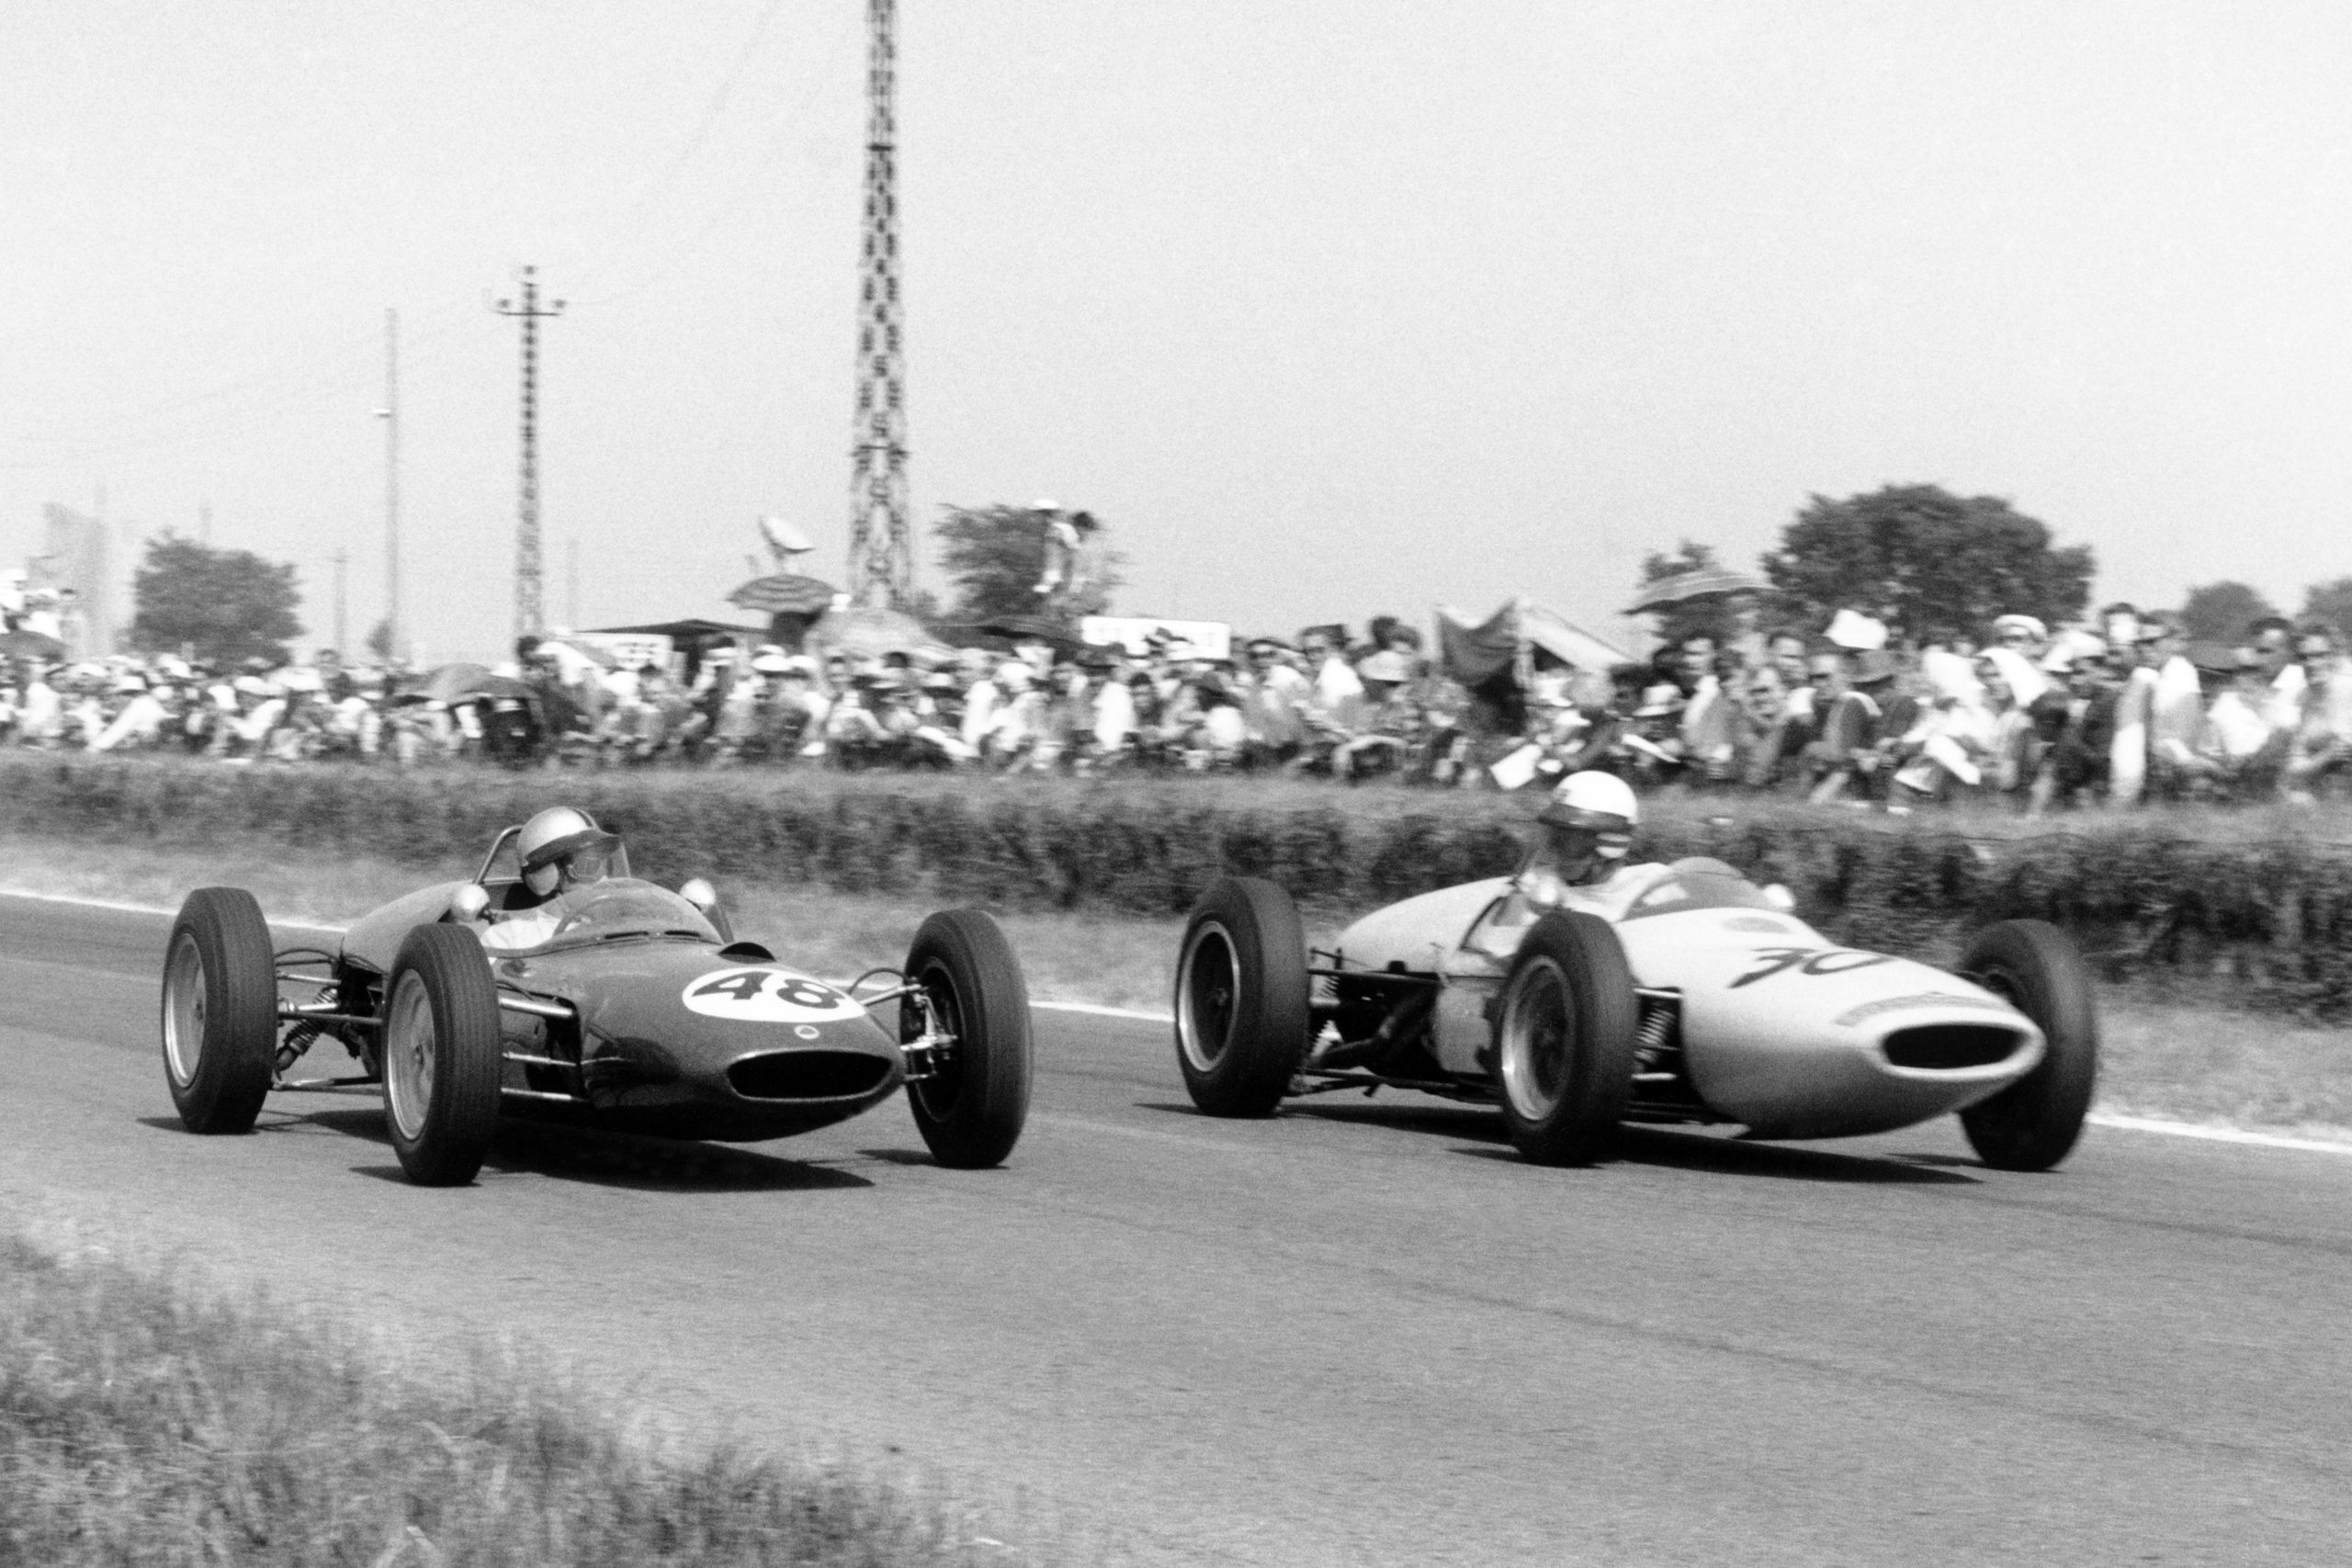 Willy Mairesse in #48 Lotus 21-Climax and Henry Taylor in #30 Lotus 18/21-Climax.